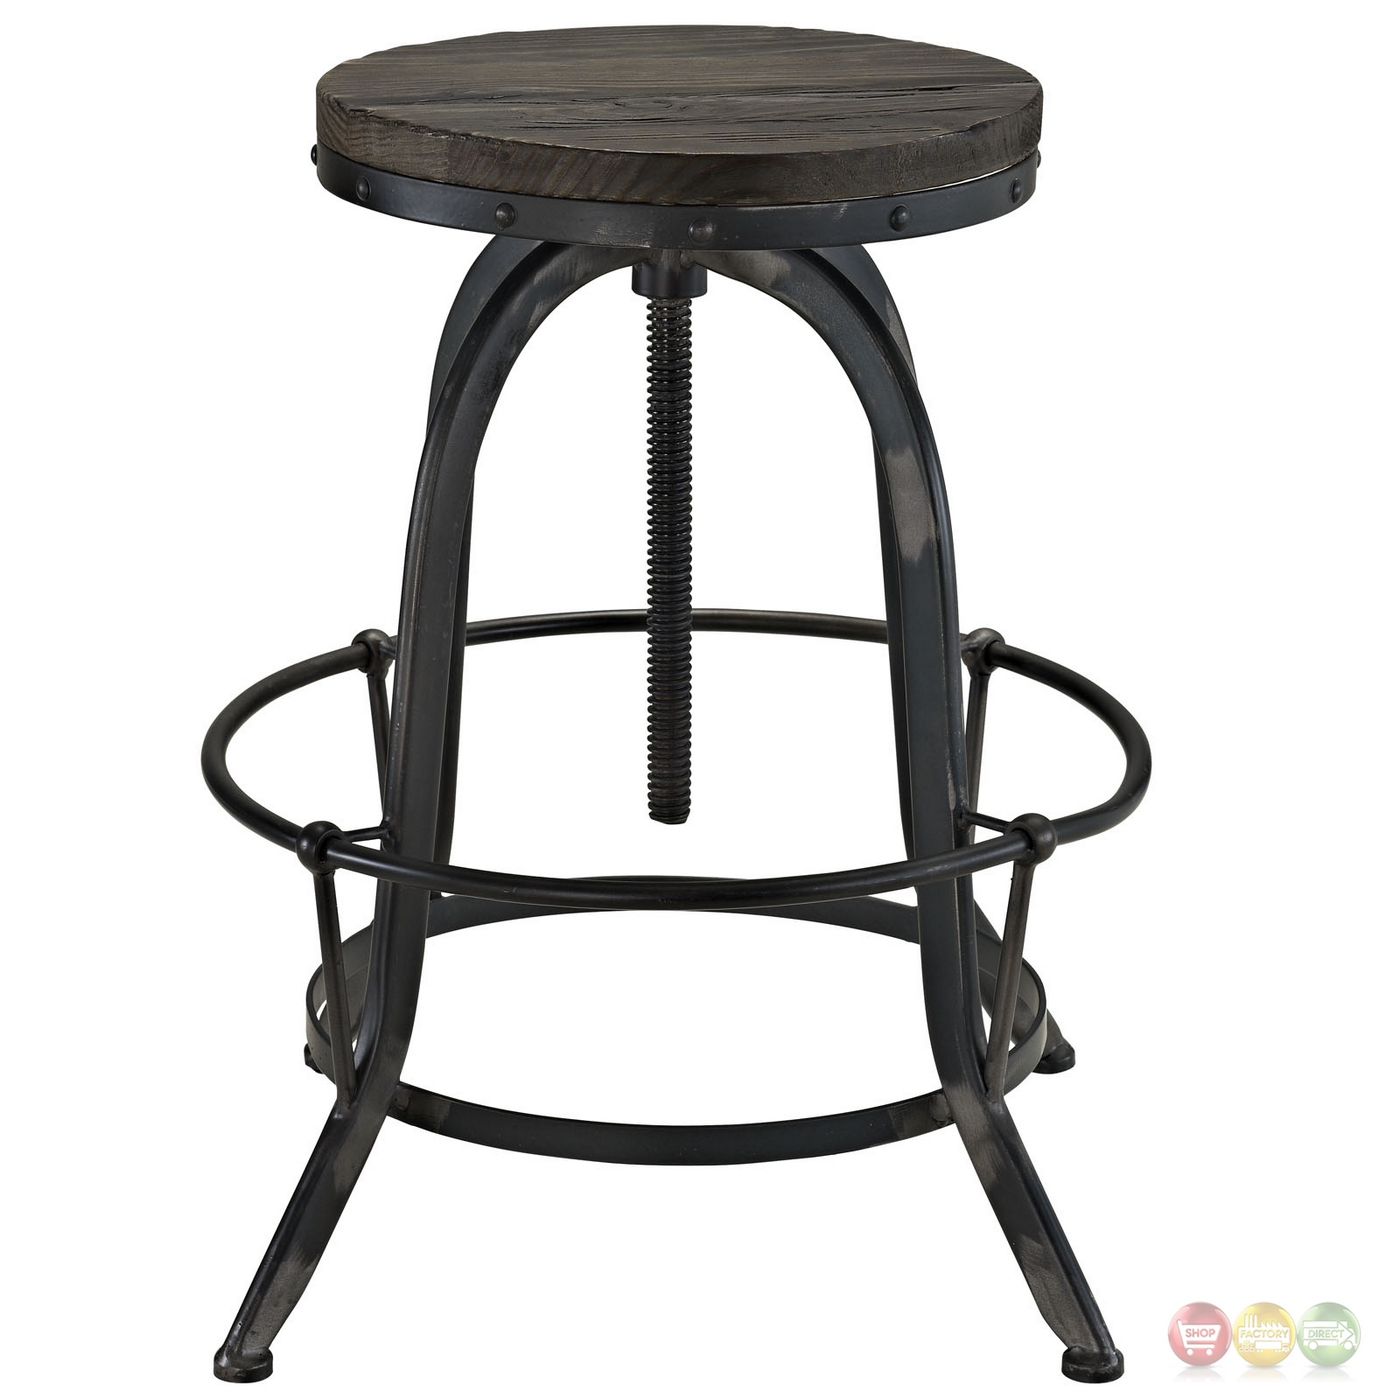 Set Of 4 Collect Industrial Bar Stool Wwood Seat amp Cast  : set of 4 collect industrial bar stool w wood seat cast iron frame black 5 from shopfactorydirect.com size 1400 x 1400 jpeg 313kB